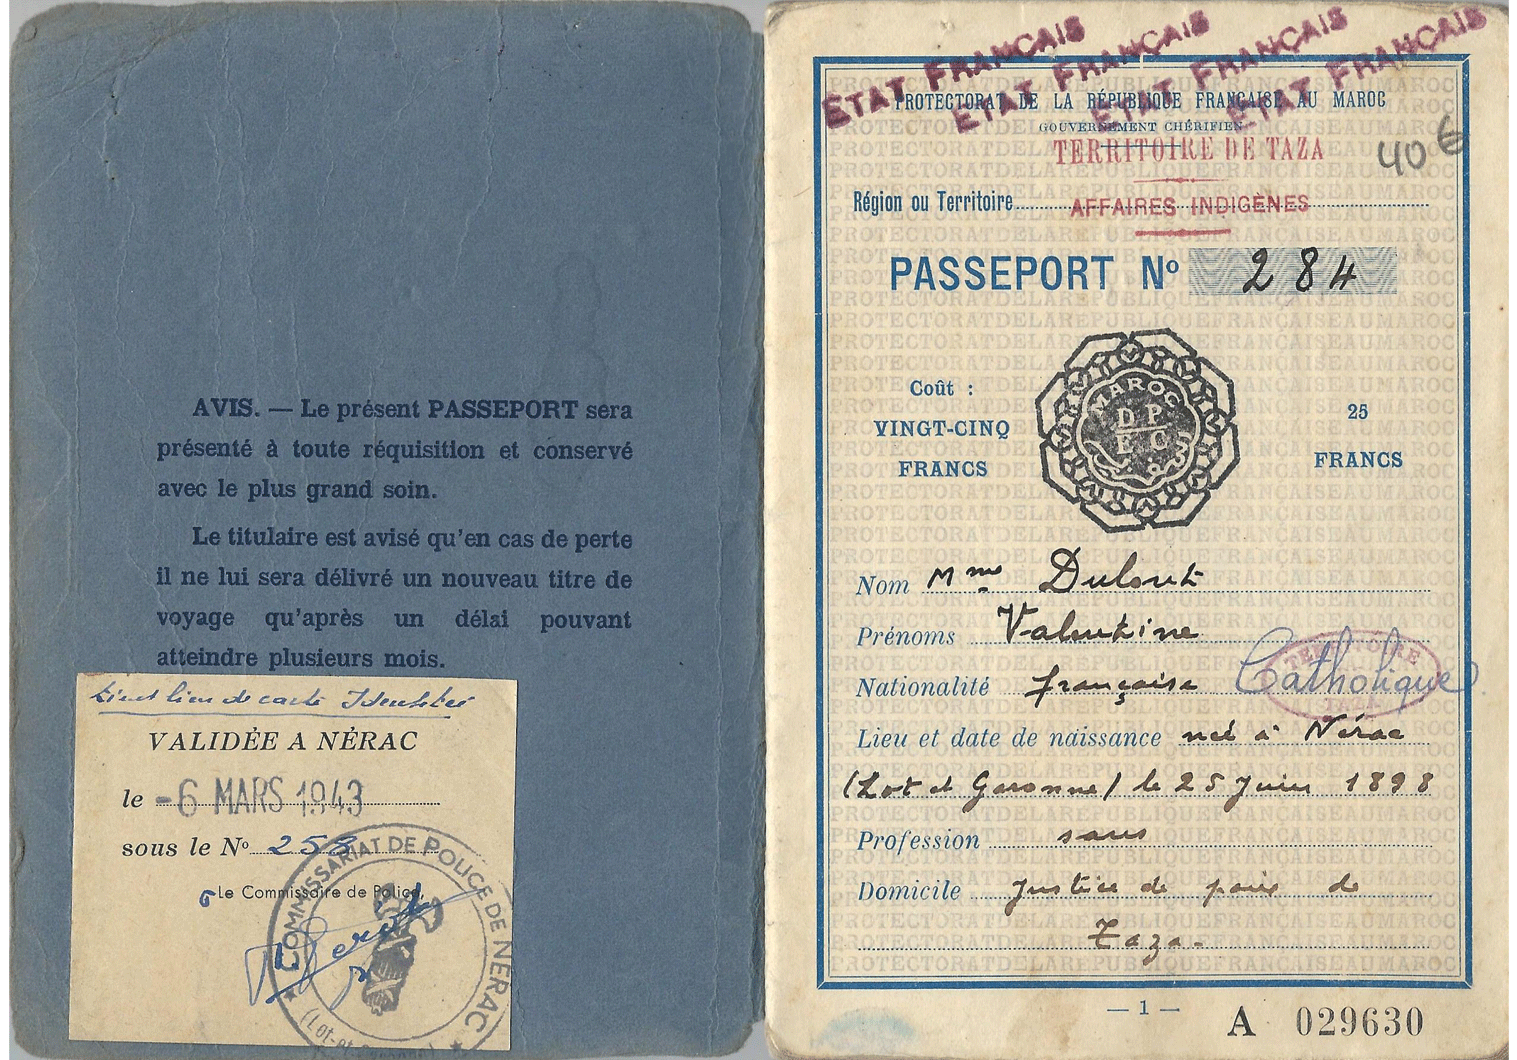 Vichy France passport